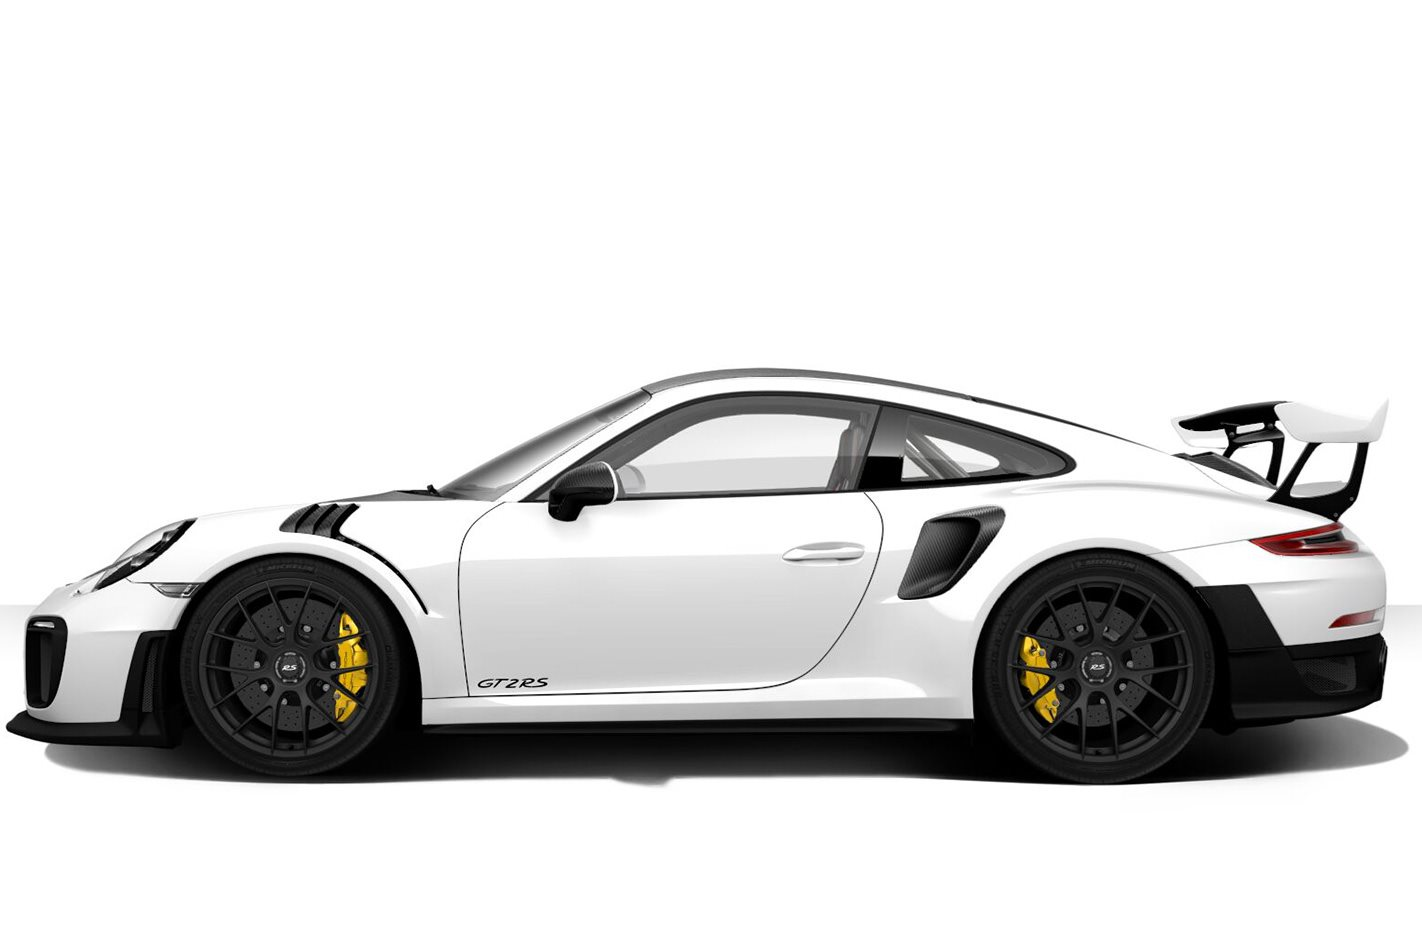 build your own porsche 911 gt2 rs motor. Black Bedroom Furniture Sets. Home Design Ideas